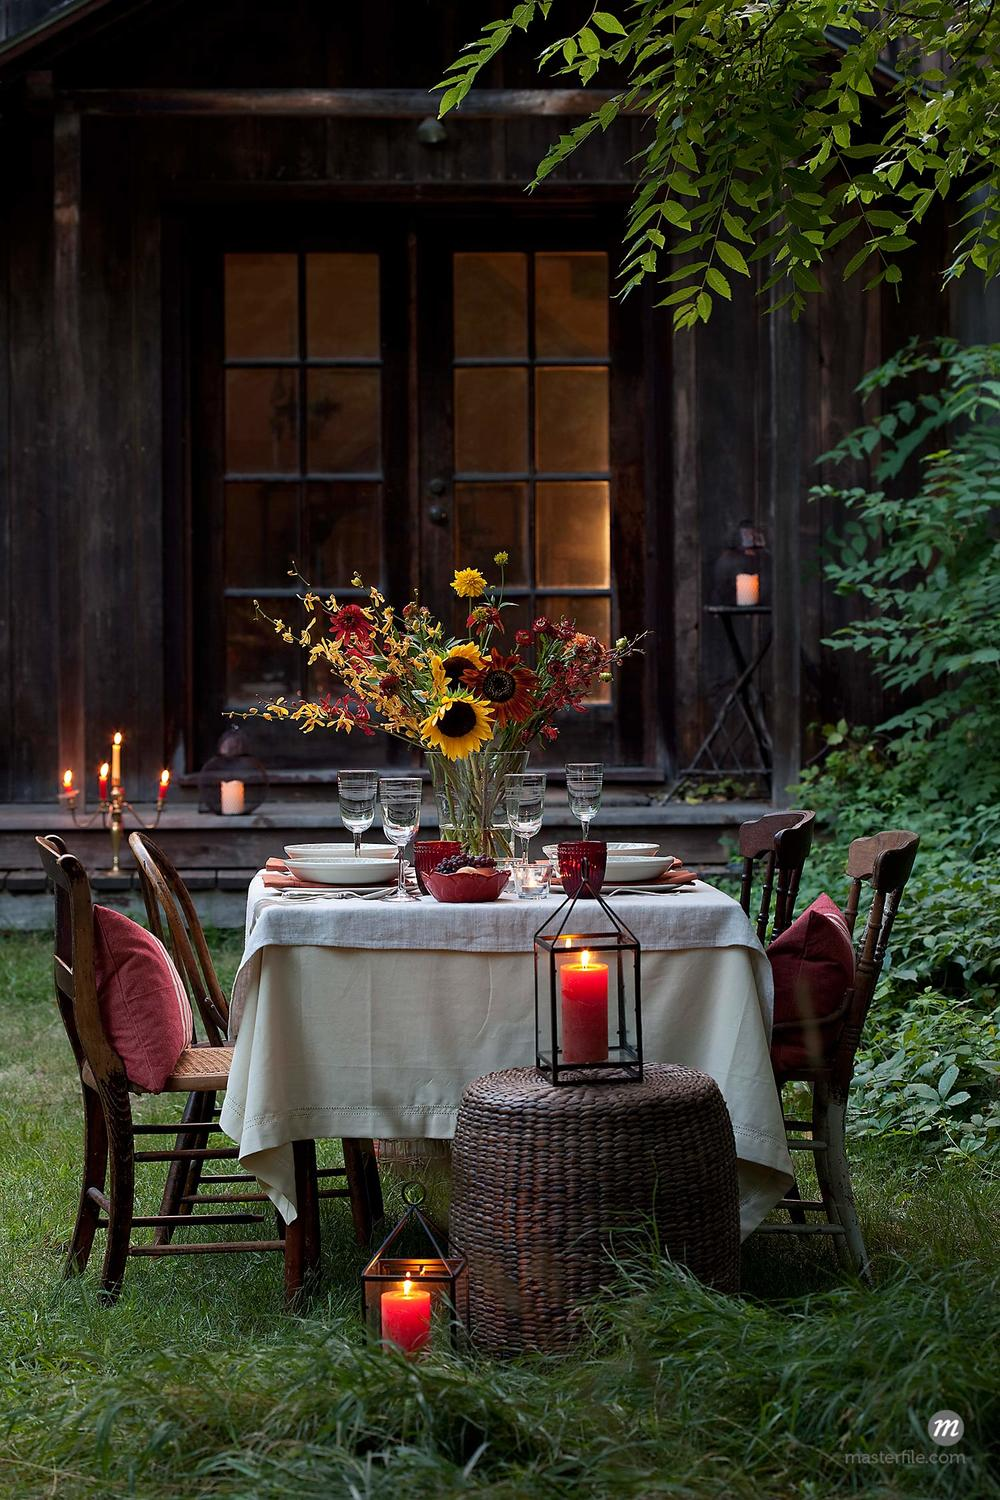 Outdoor Dining in the Fall © Susan Findlay / Masterfile